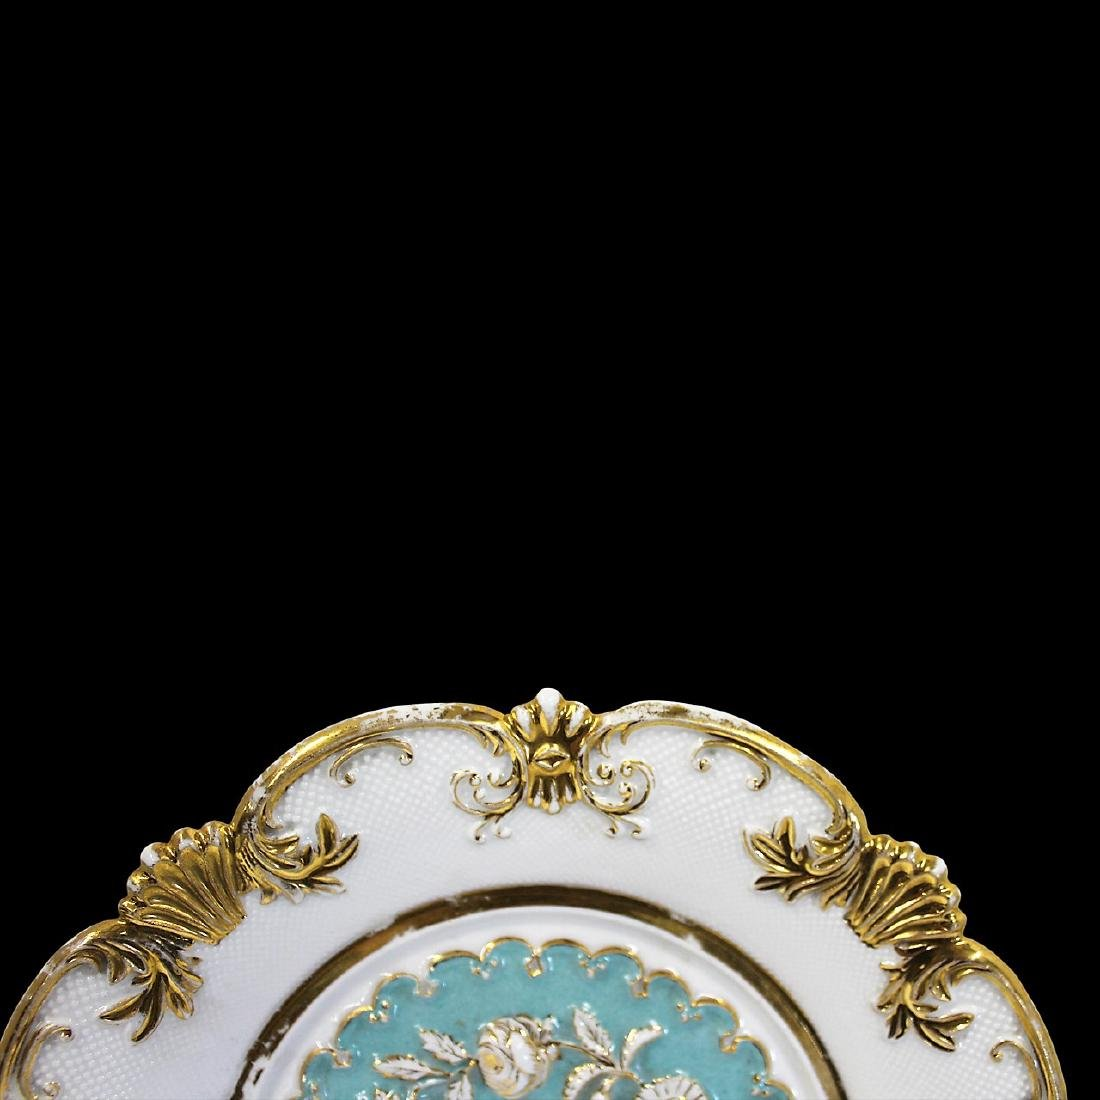 Pair of Meissen Baroque Style Plates - 3